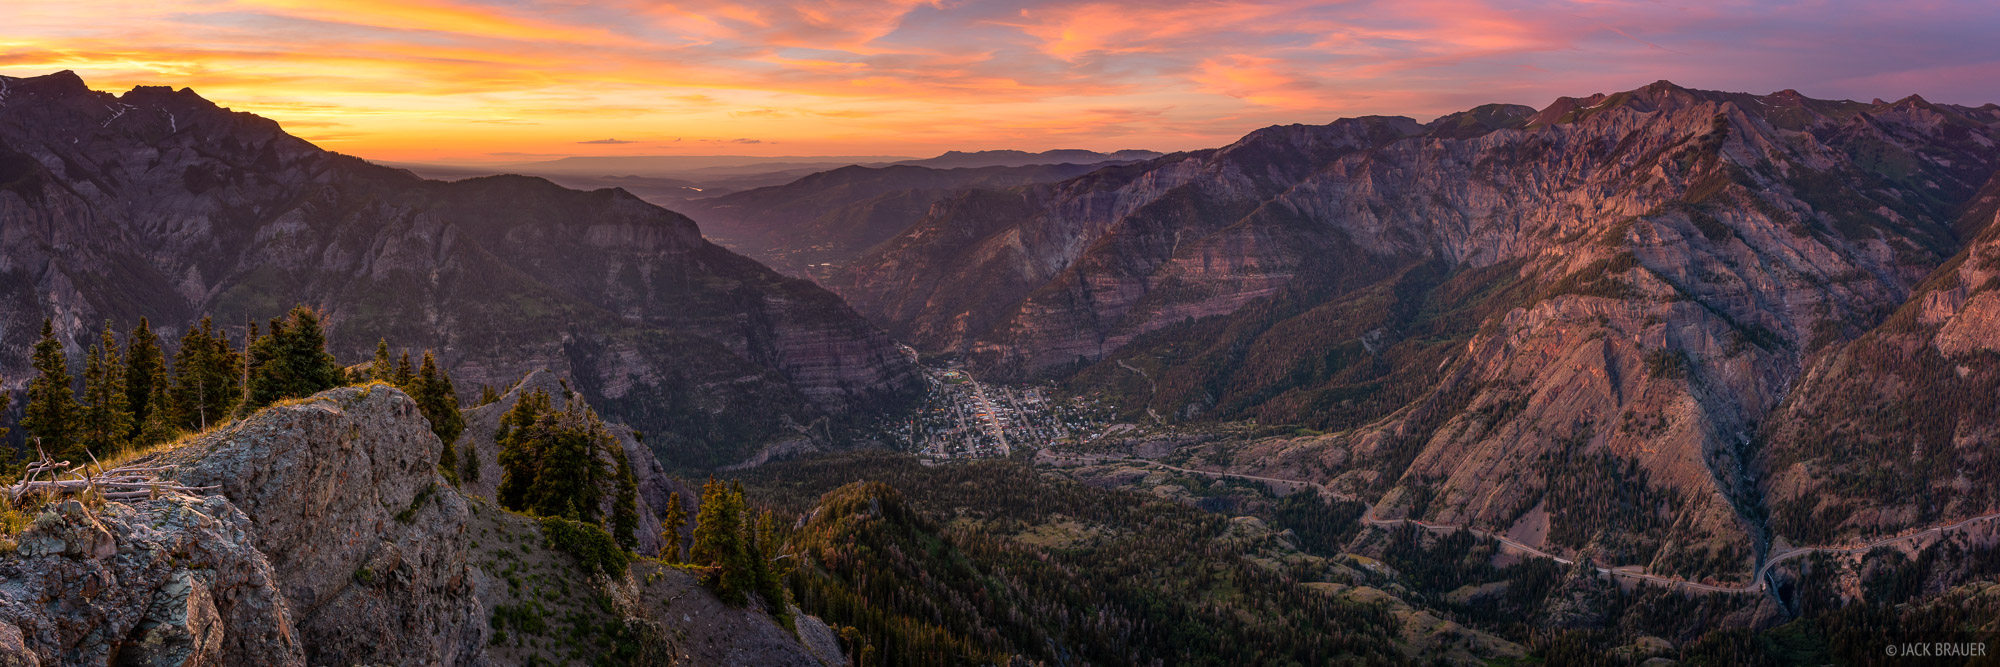 Colorado, Ouray, San Juan Mountains, panorama, sunset, photo